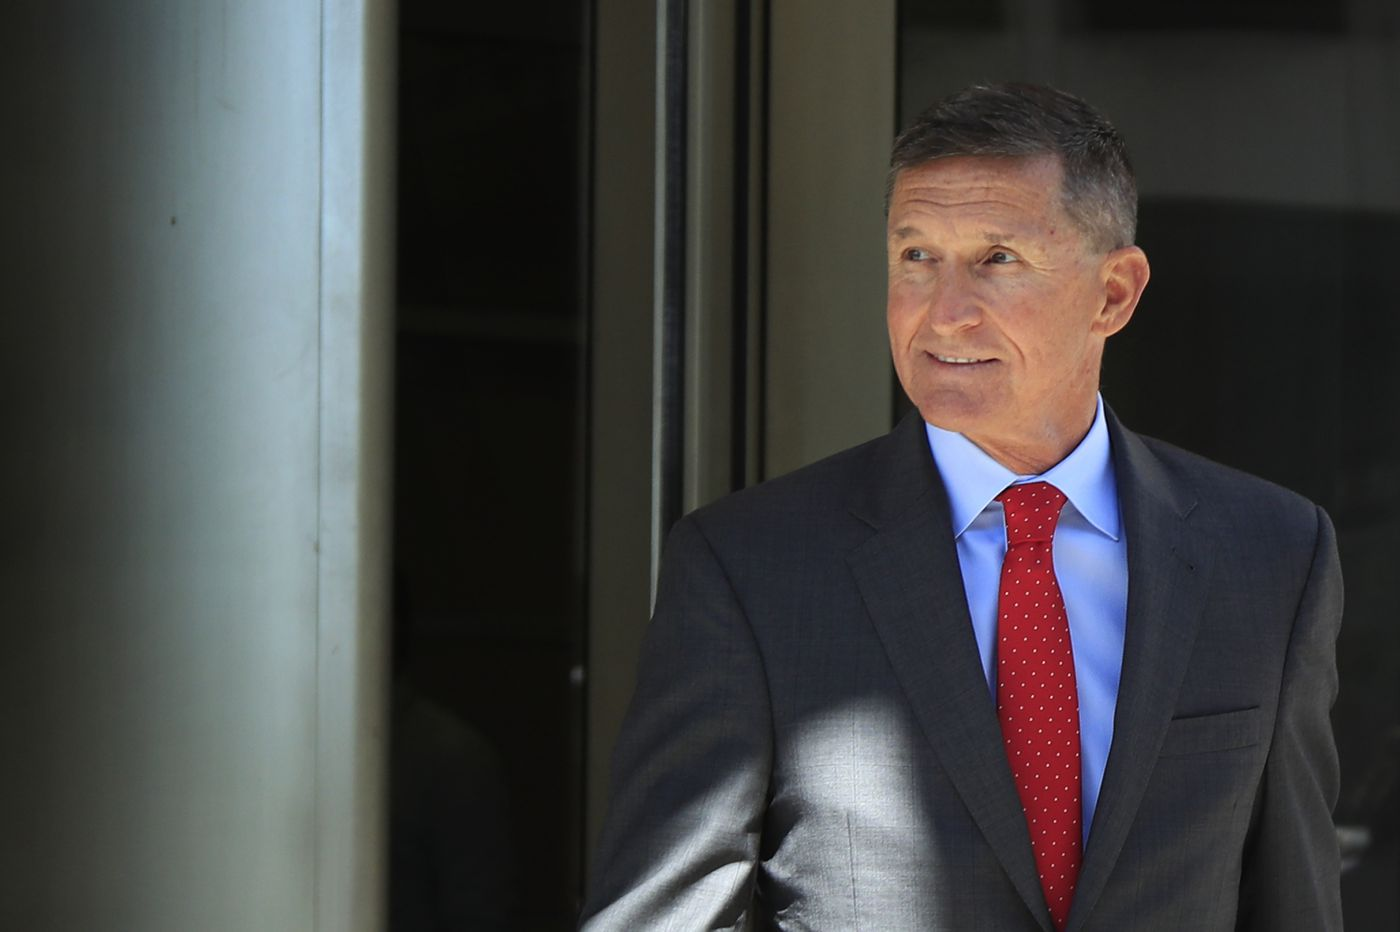 Prosecutors charge 2 involved in Michael Flynn's Turkish lobbying